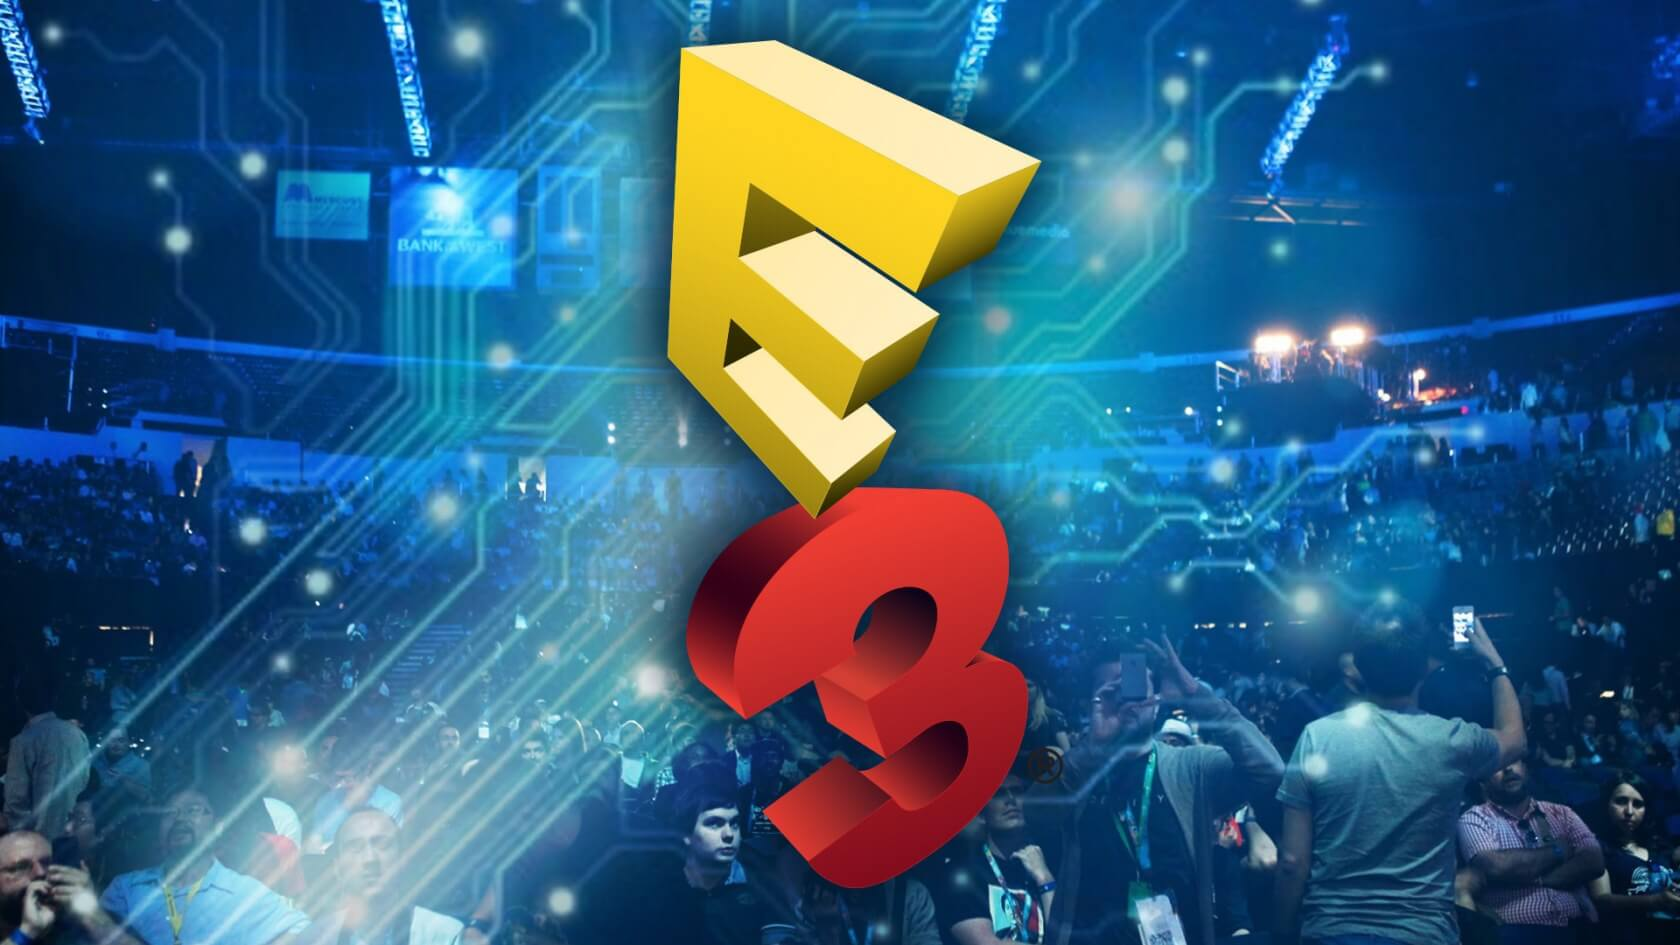 E3 2018 preview: what to expect from the big video game event